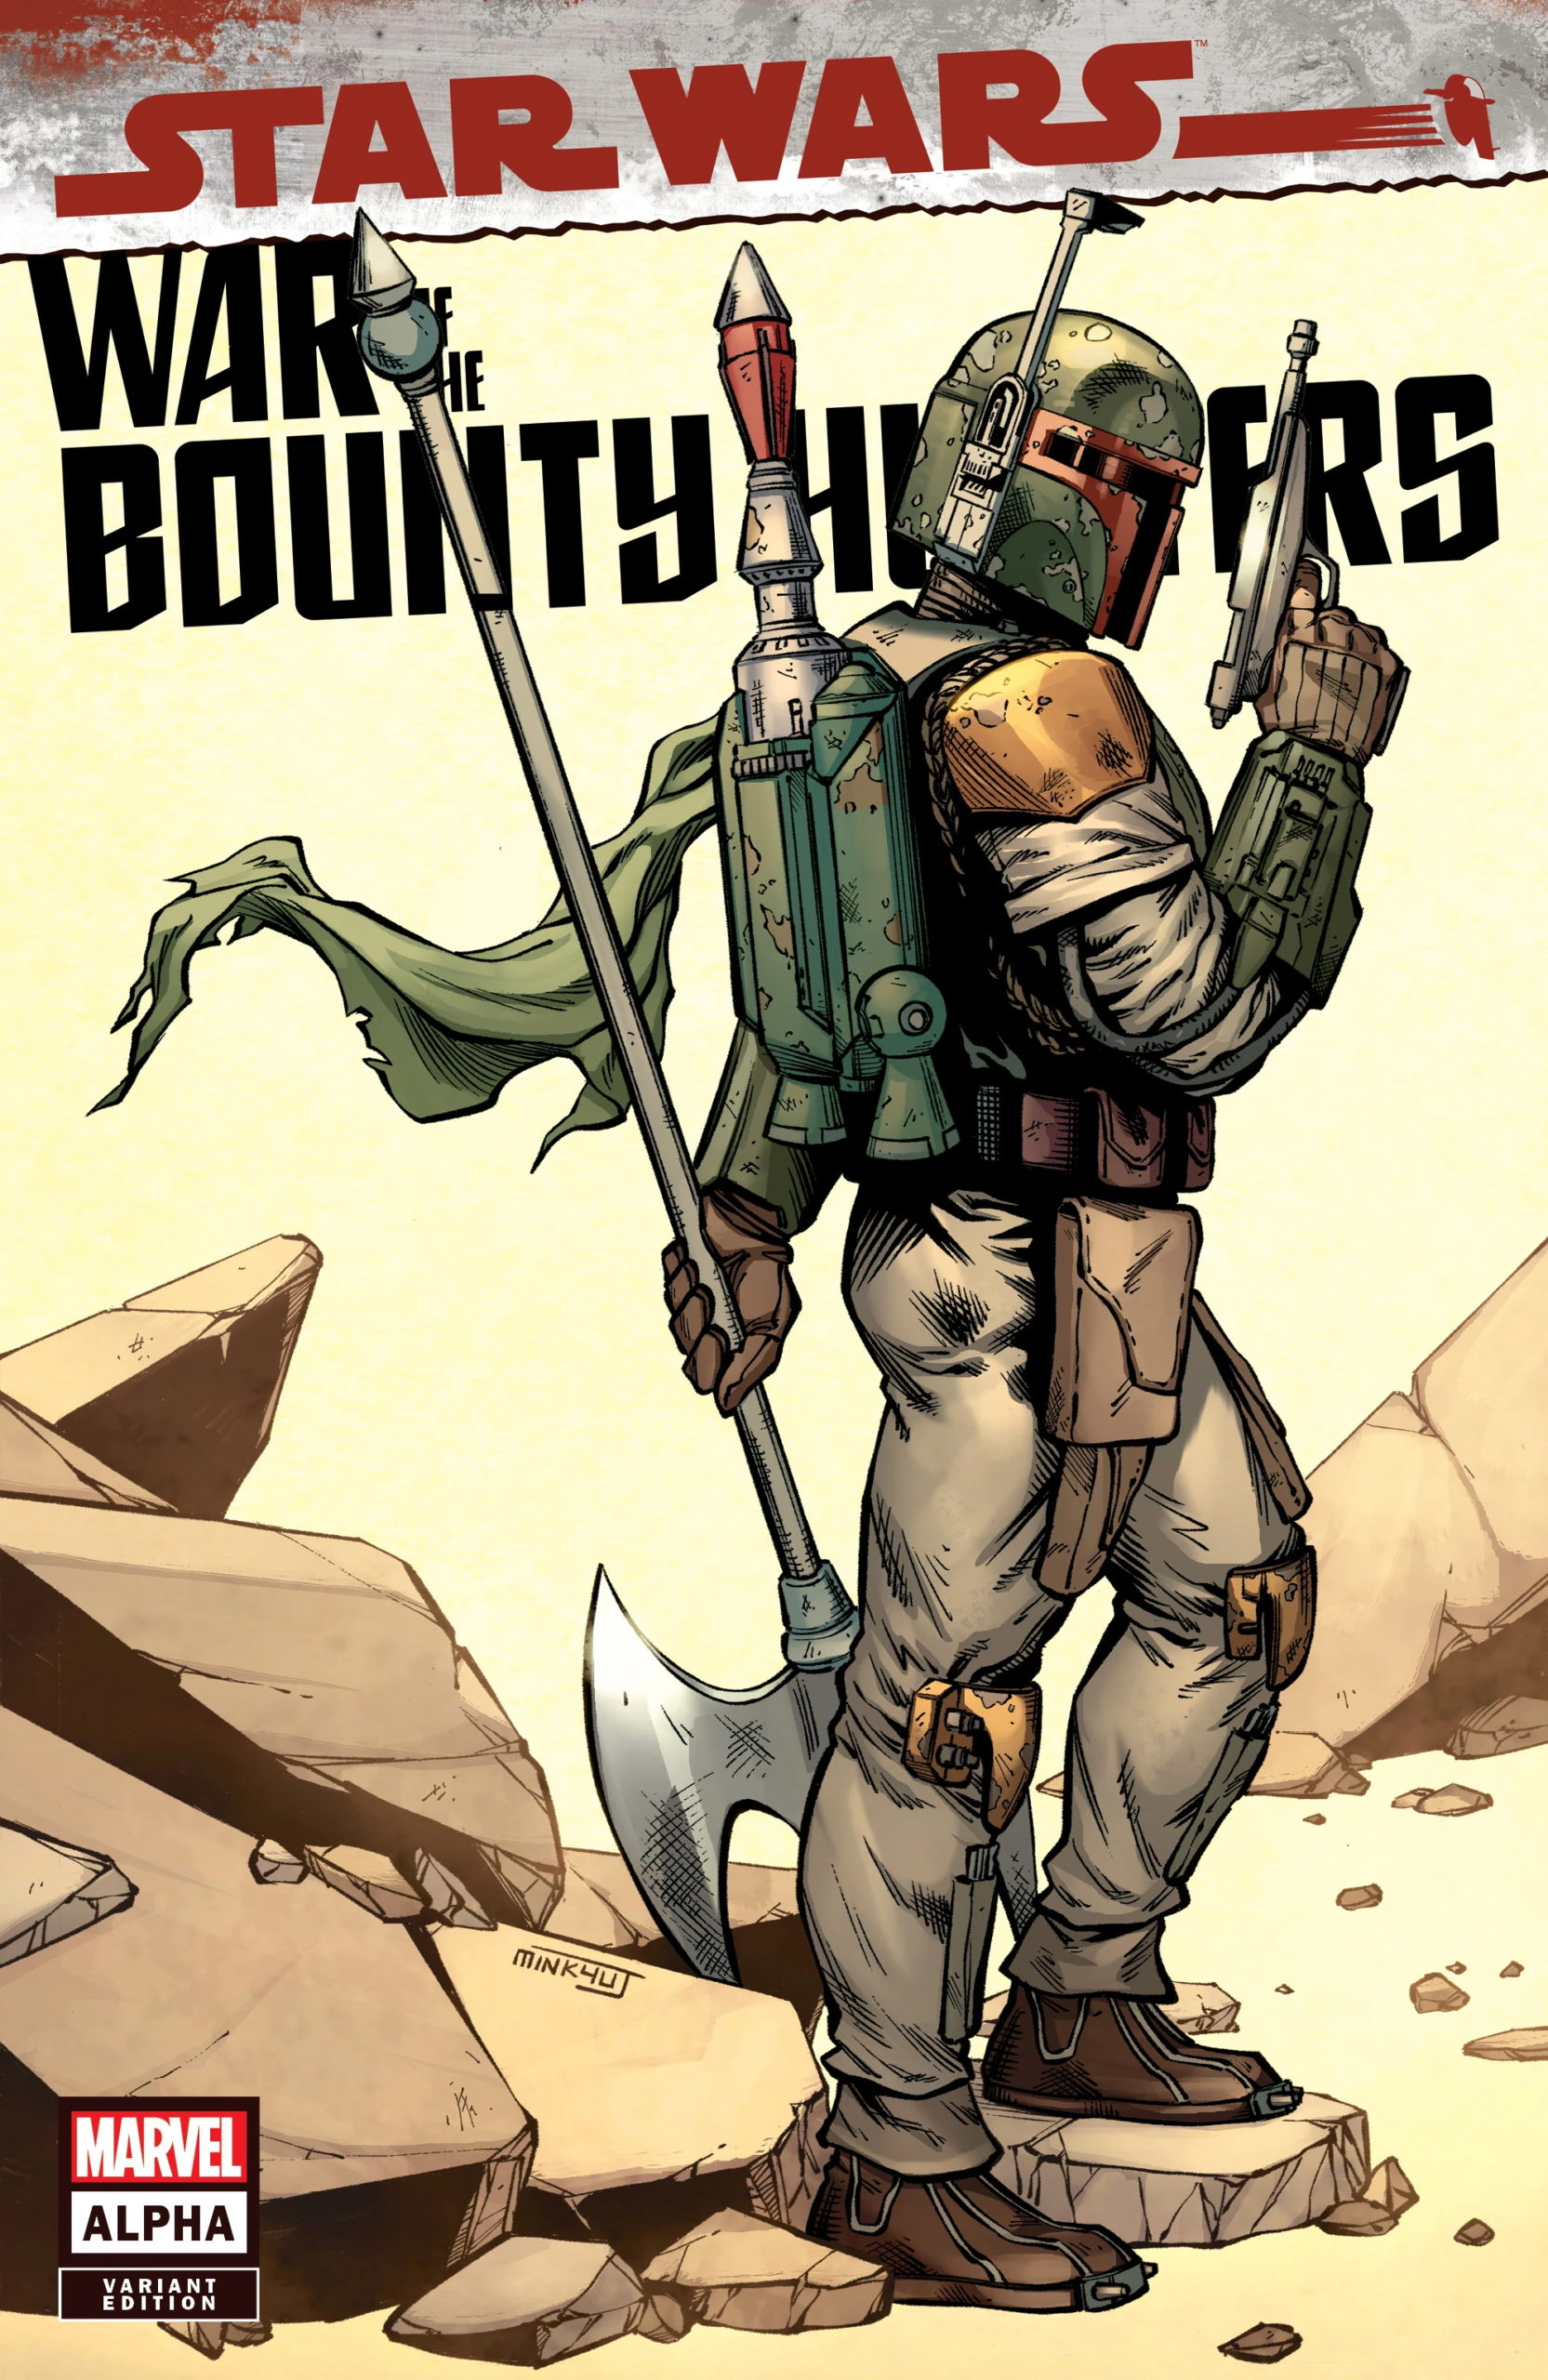 War of the Bounty Hunters Alpha #1 (Minkyu Jung Variant Cover) (05.05.2021)